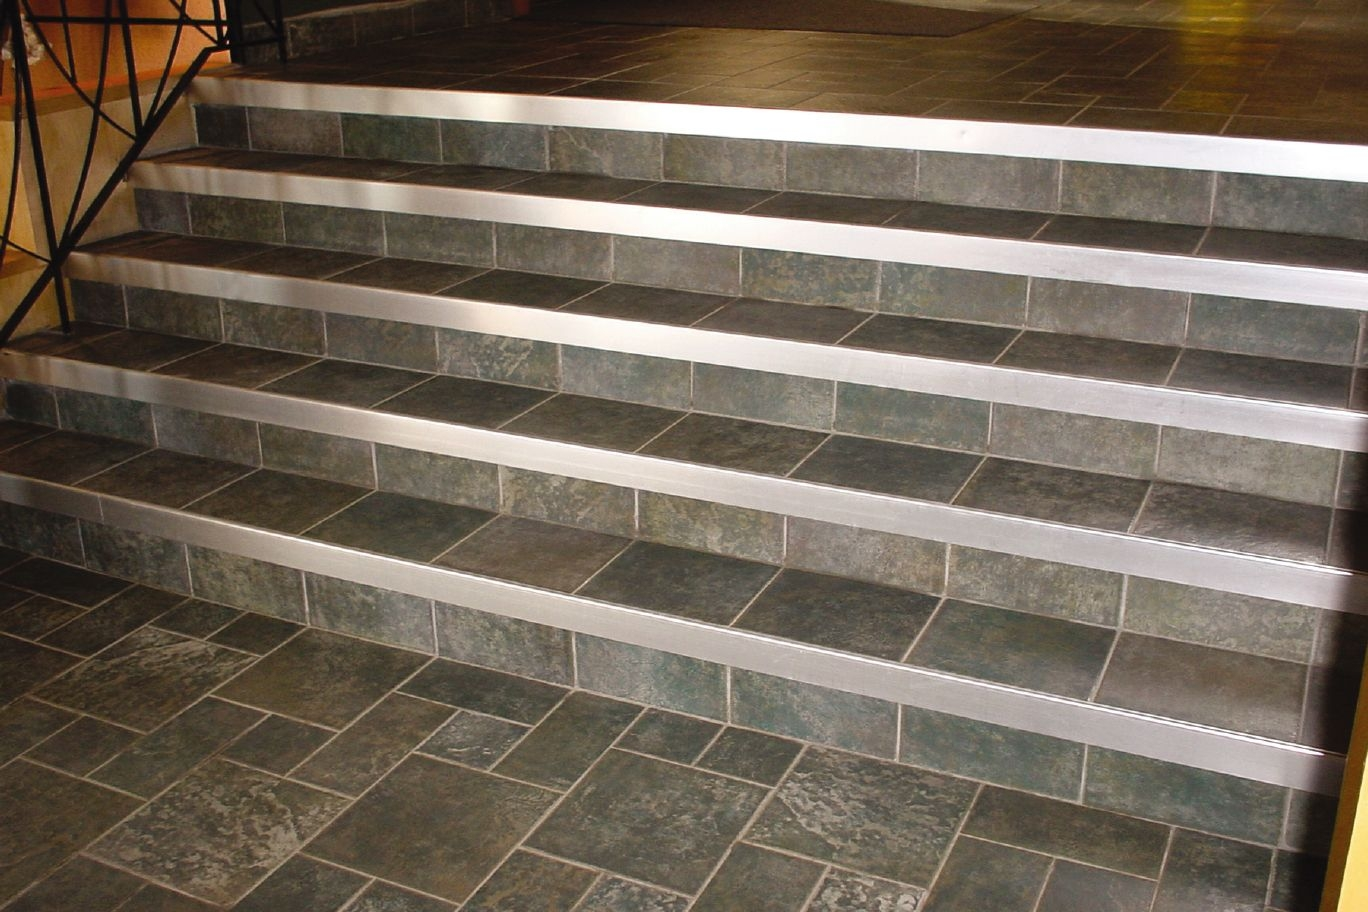 Tiling Stairs Edge Schluter Rondec Step For Countertops Profiles Pic 02